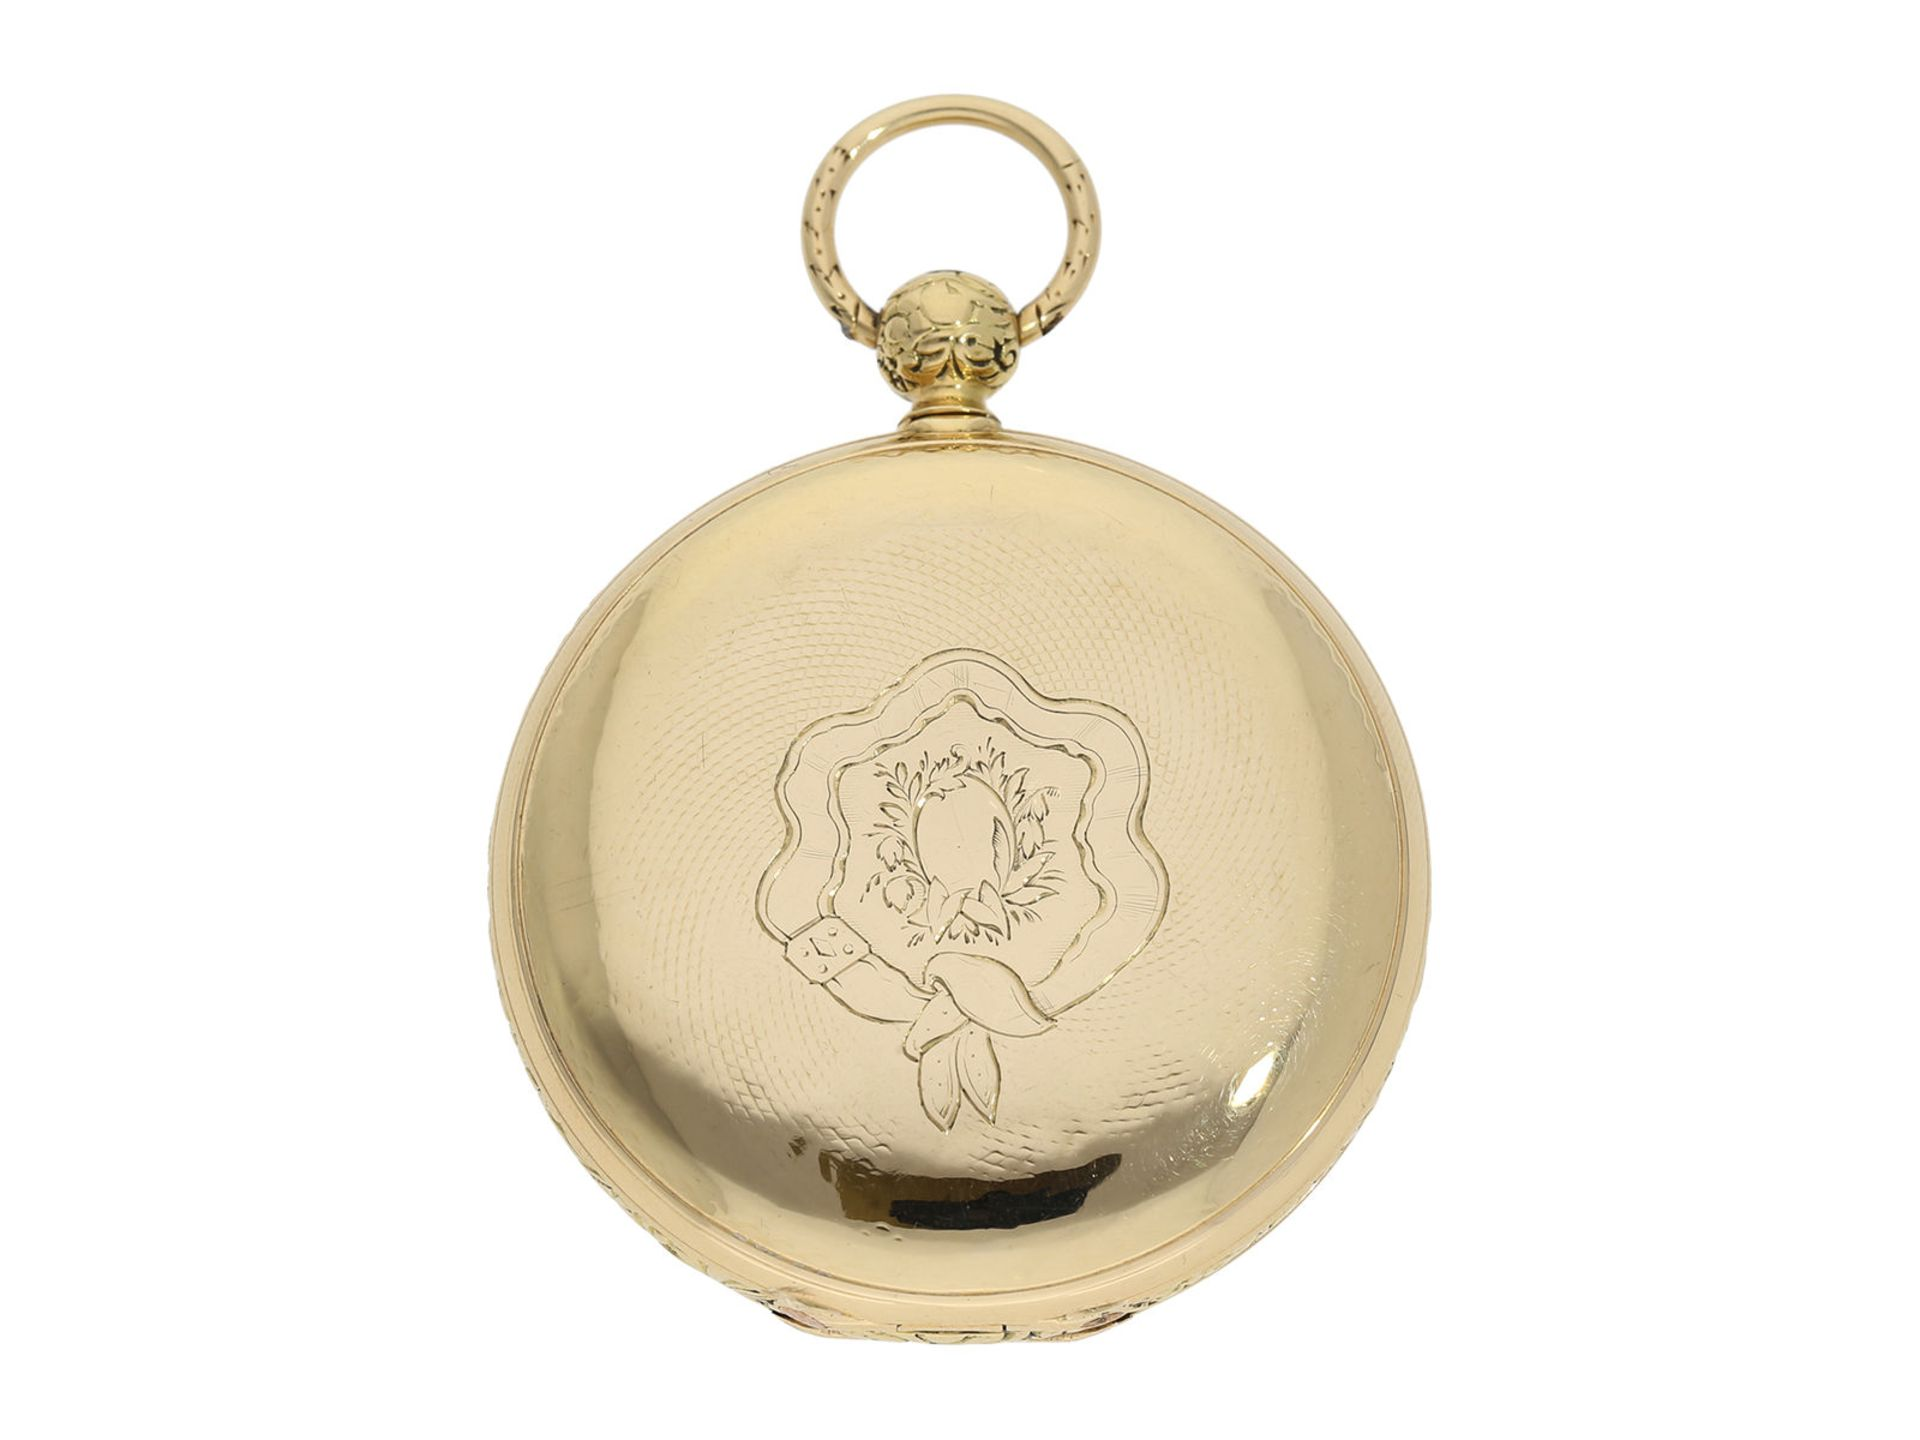 Pocket watch: interesting early gold hunting case watch for the Ottoman market/ Turkish market, - Bild 7 aus 8